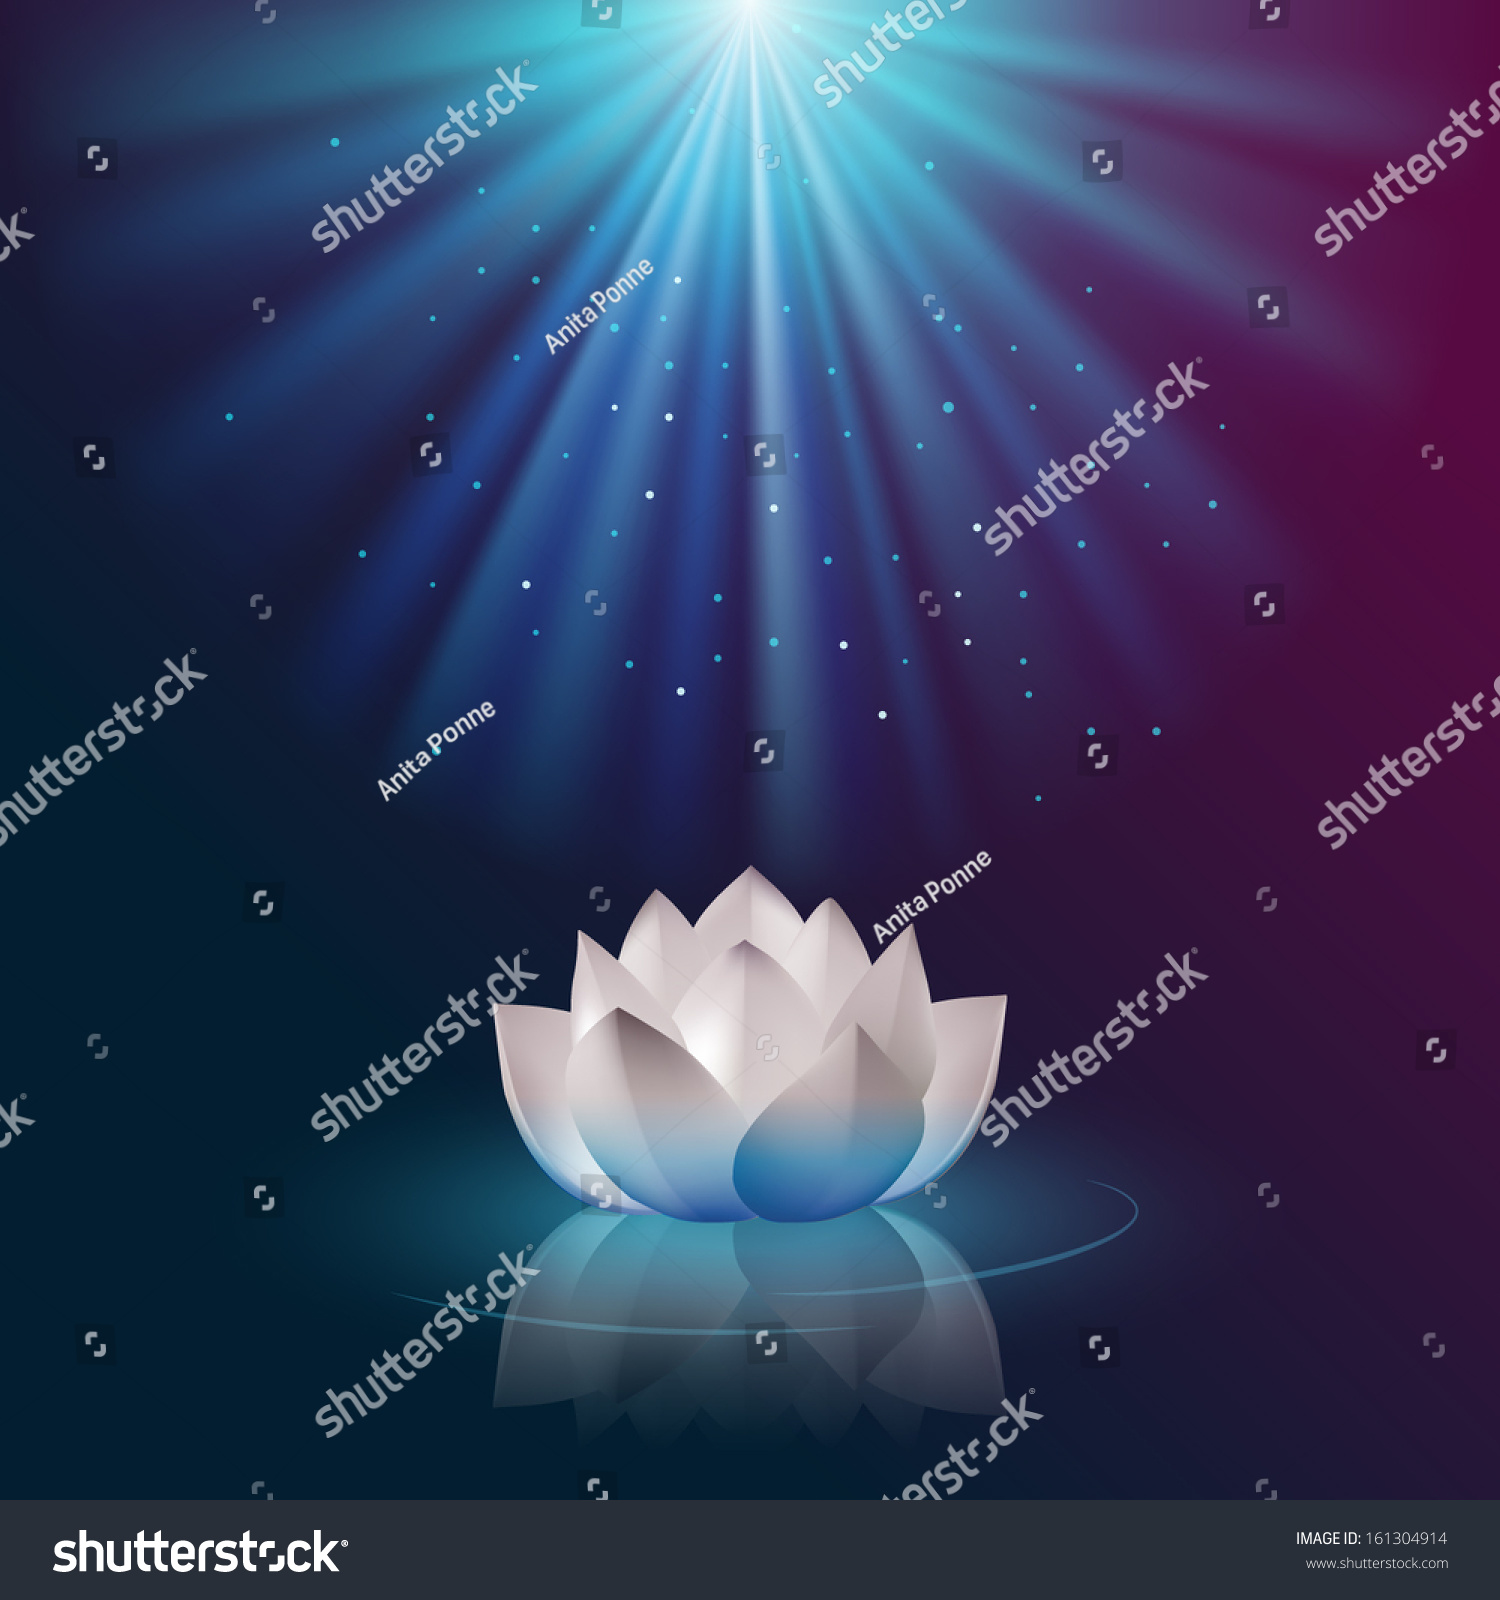 Lotus flower eps 10 vector stock vector royalty free 161304914 lotus flower eps10 vector izmirmasajfo